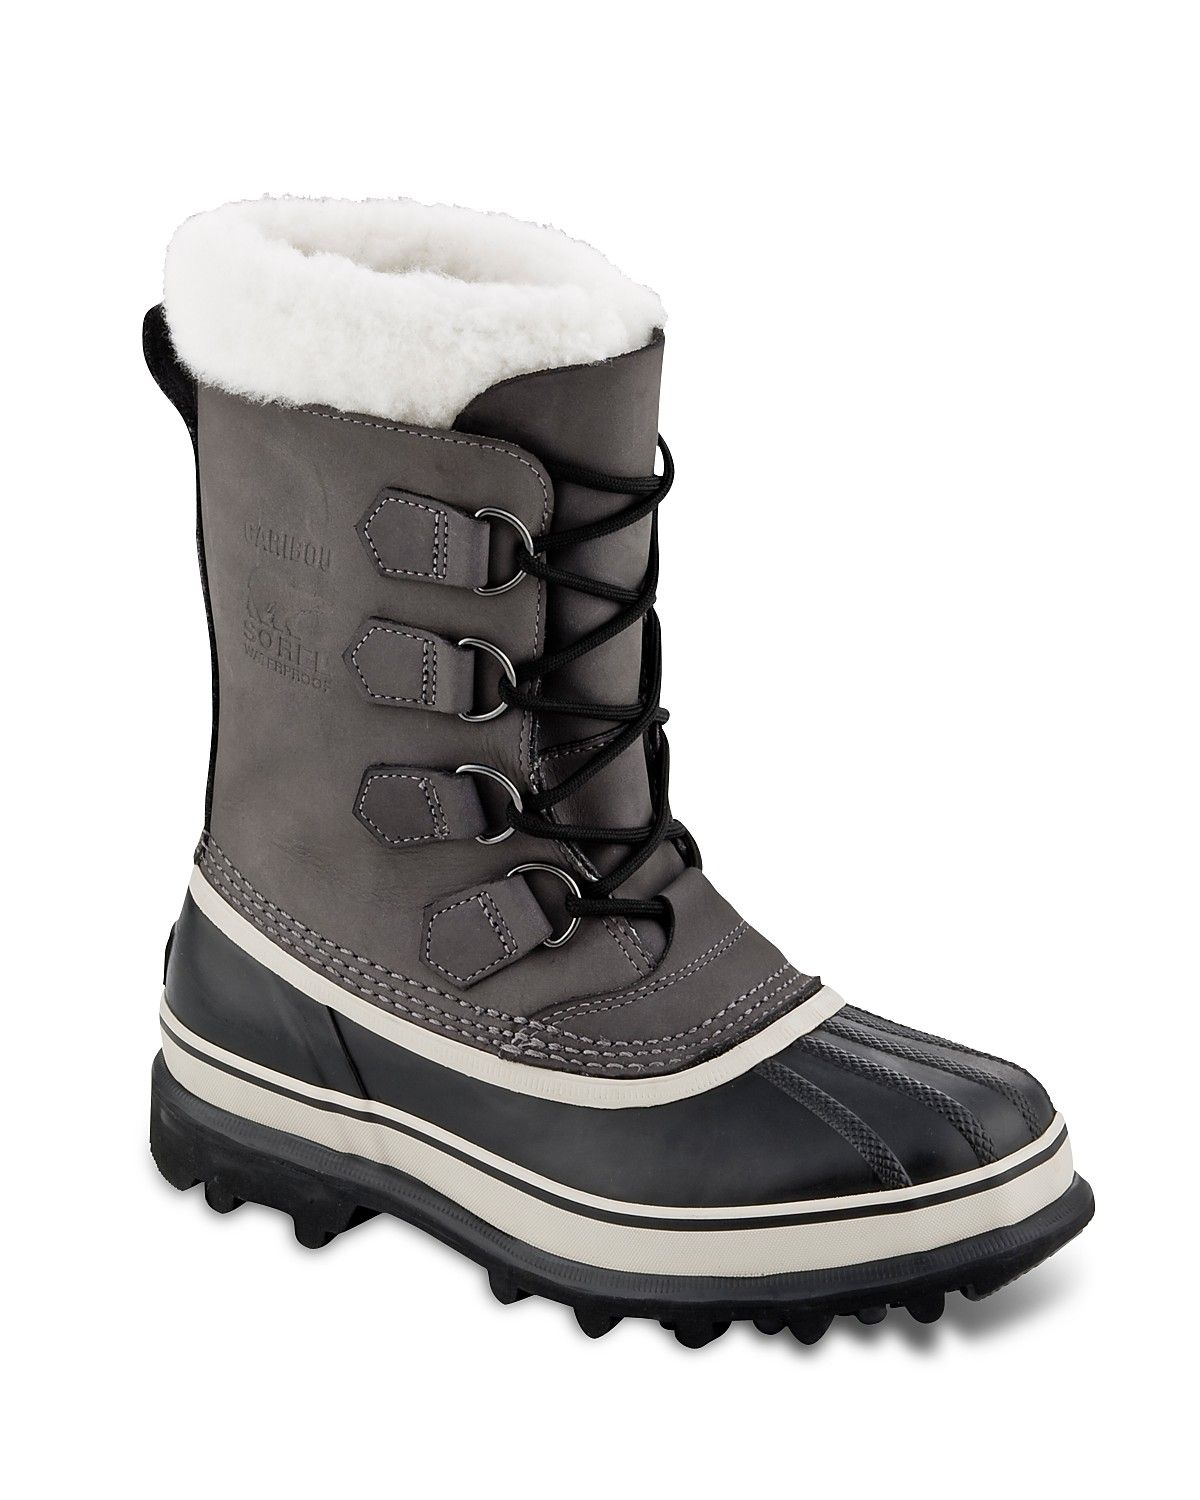 Designer Sorel 1964 Pac Ii Snow Boots Grey For Women On Sale